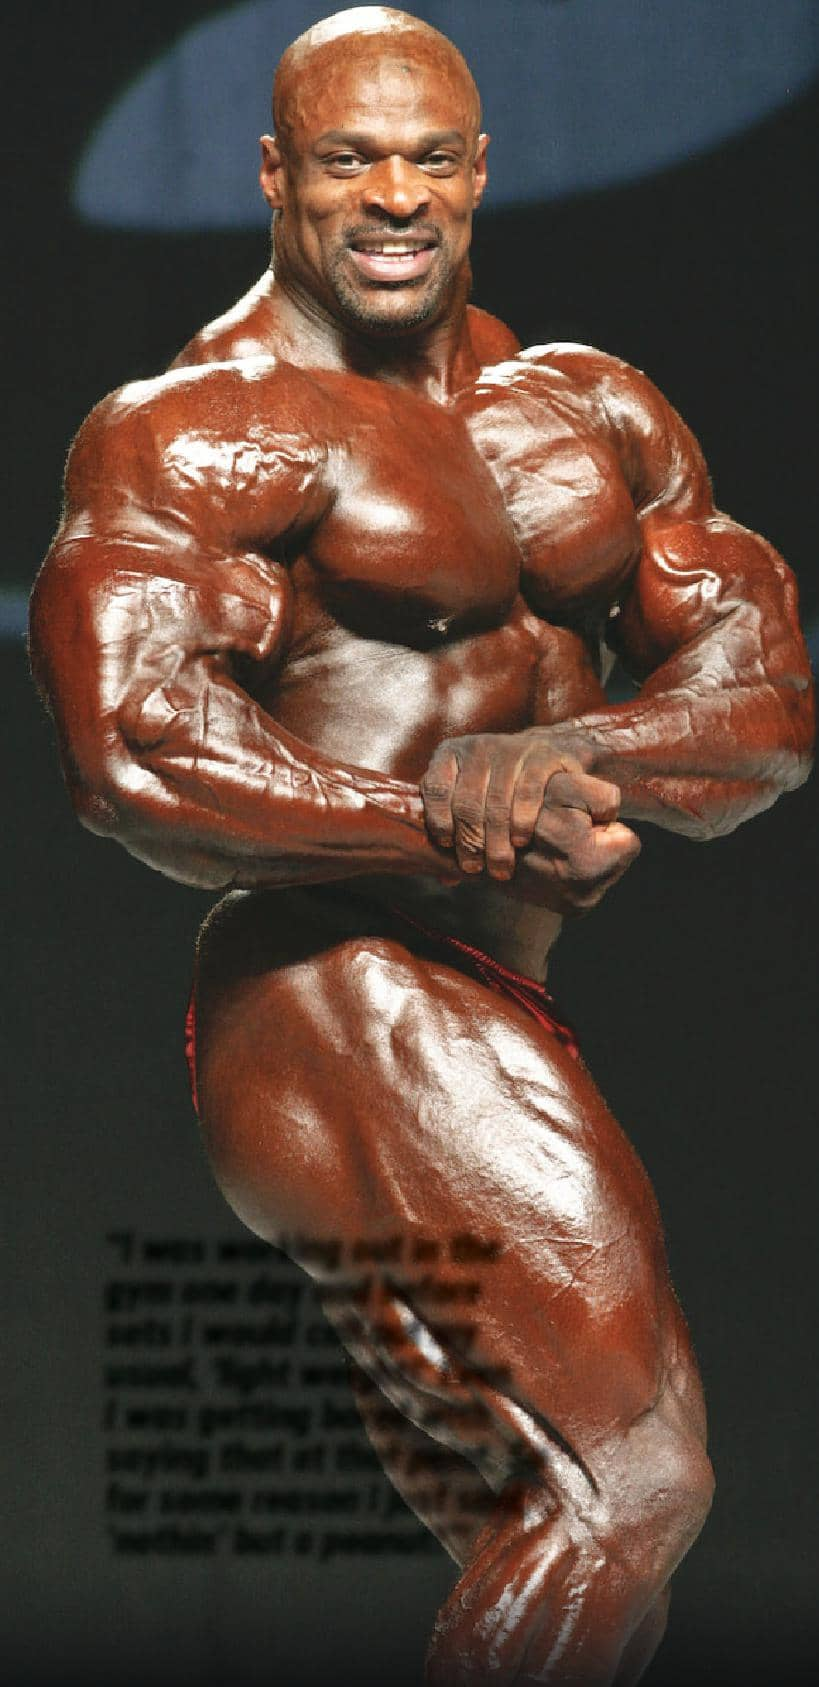 Ronnie Coleman, Eight-Time Mr. Olympia